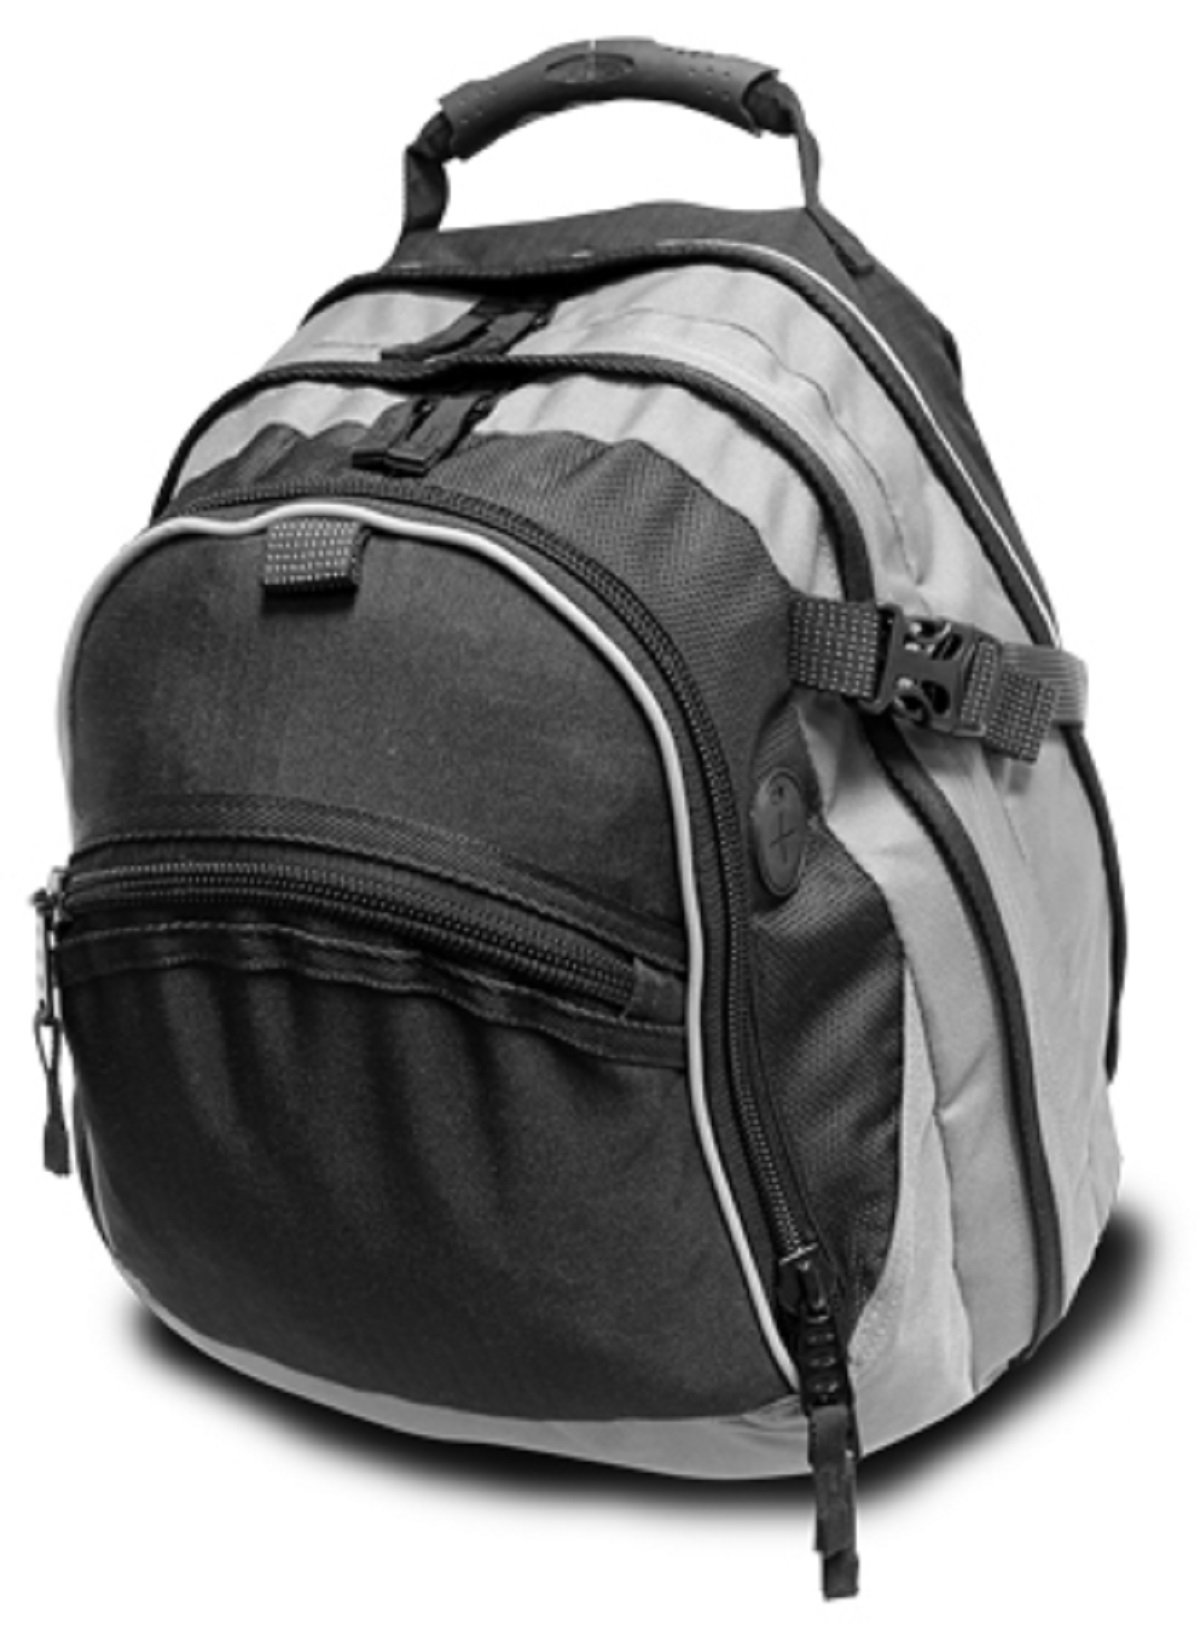 UNION SQUARE BACKPACK, Black/Gray, Case of 12